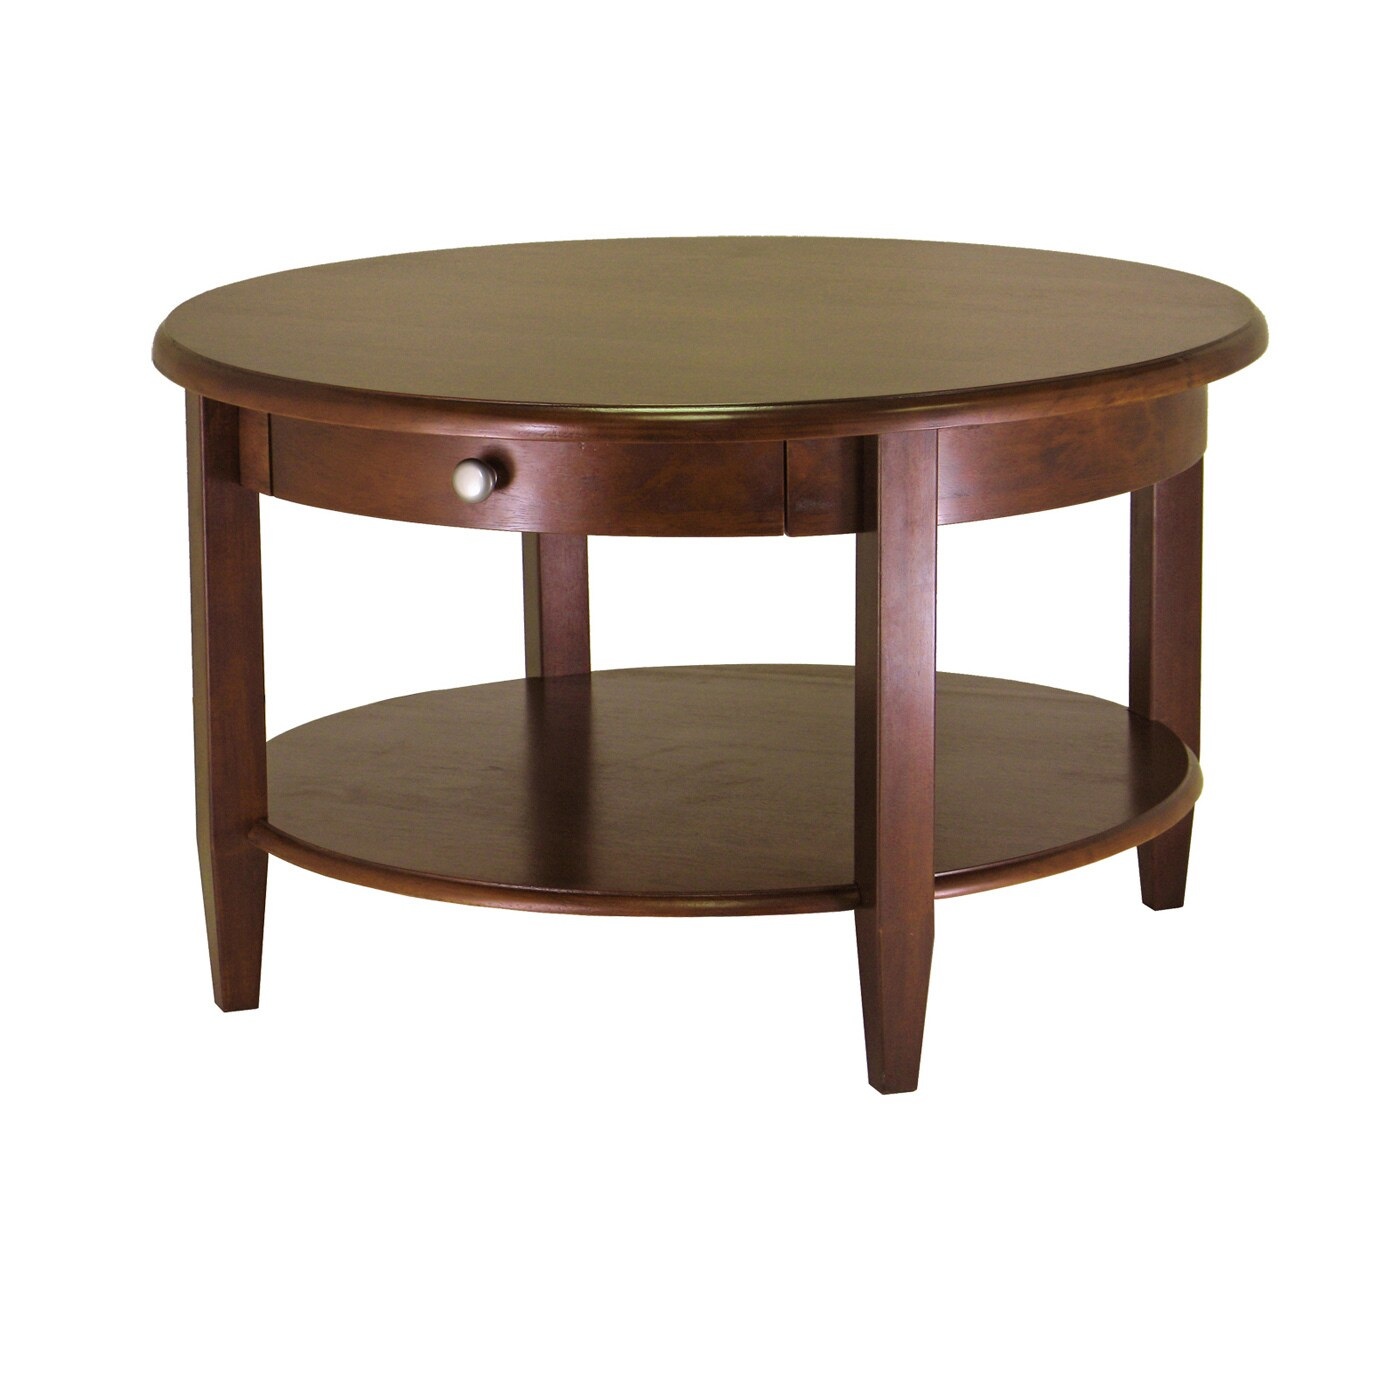 Unbranded Concord Round Coffee Table with Drawer and Shel...